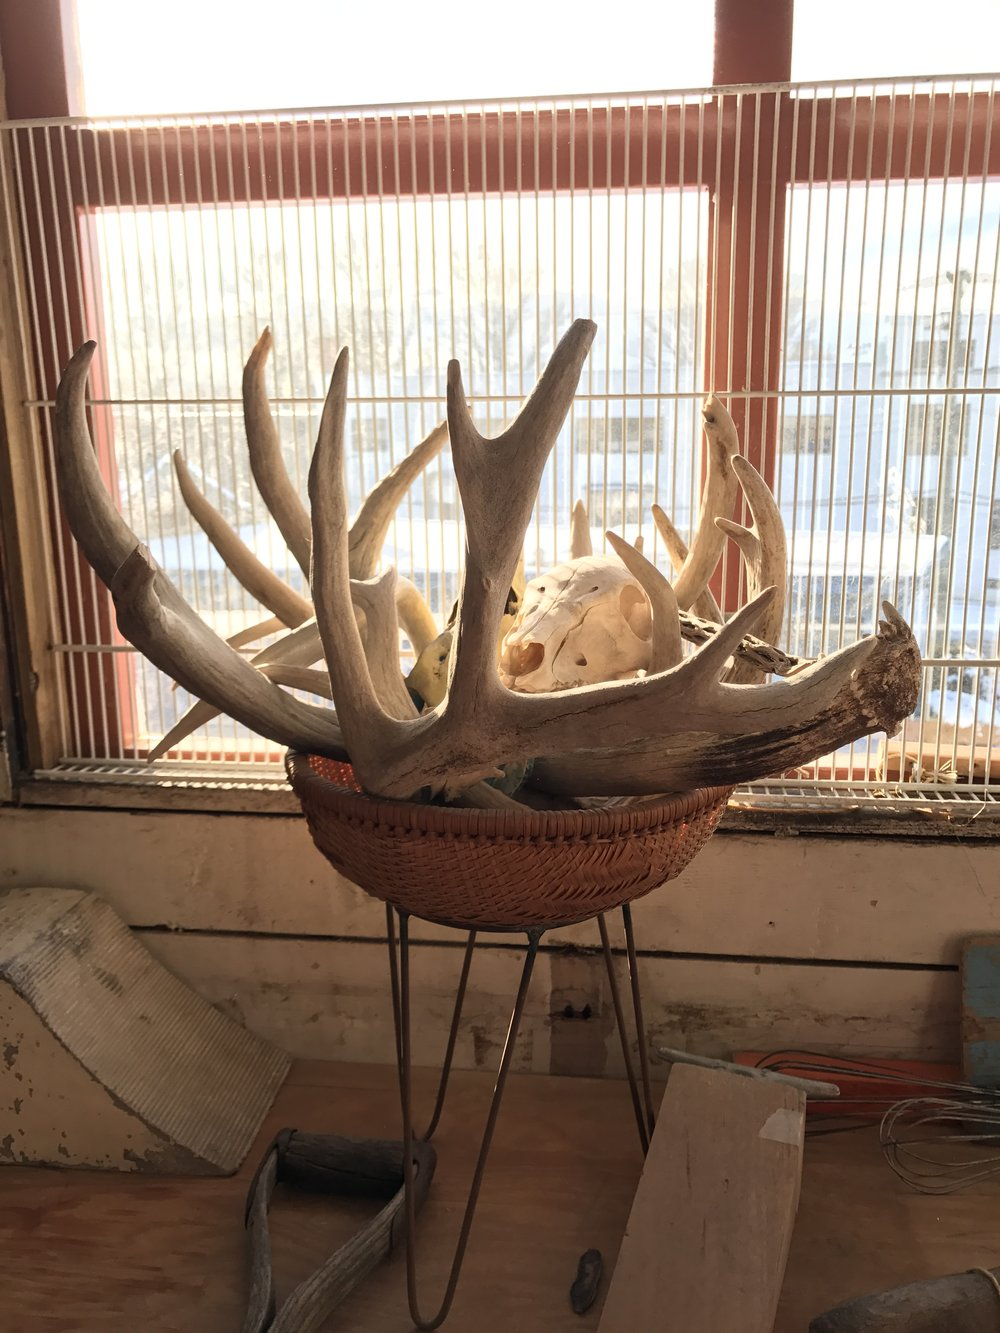 Antlers and Skull from around the studio.